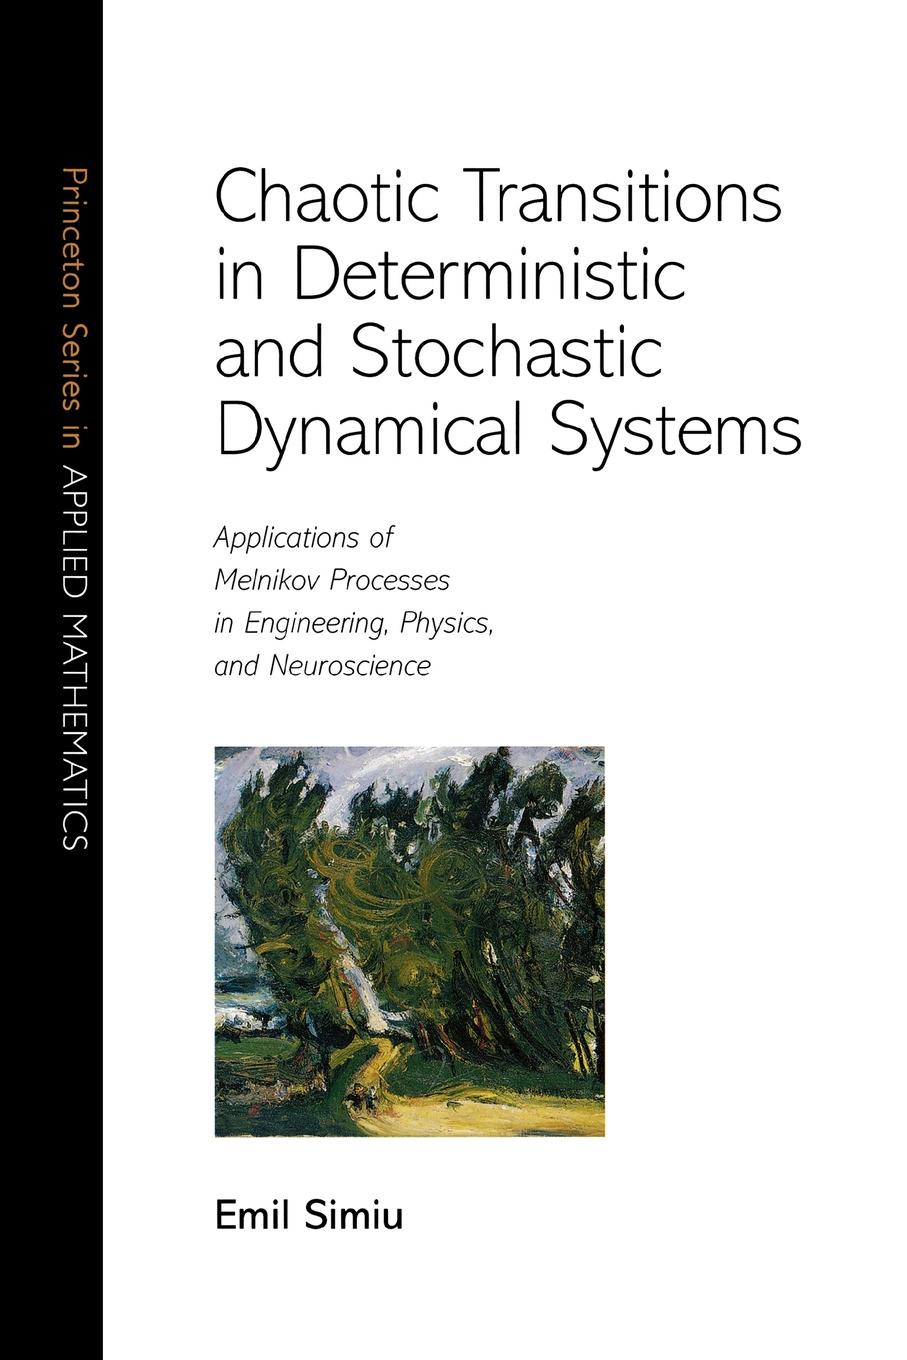 Emil Simiu Chaotic Transitions in Deterministic and Stochastic Dynamical Systems. Applications of Melnikov Processes in Engineering, Physics, and Neuroscience